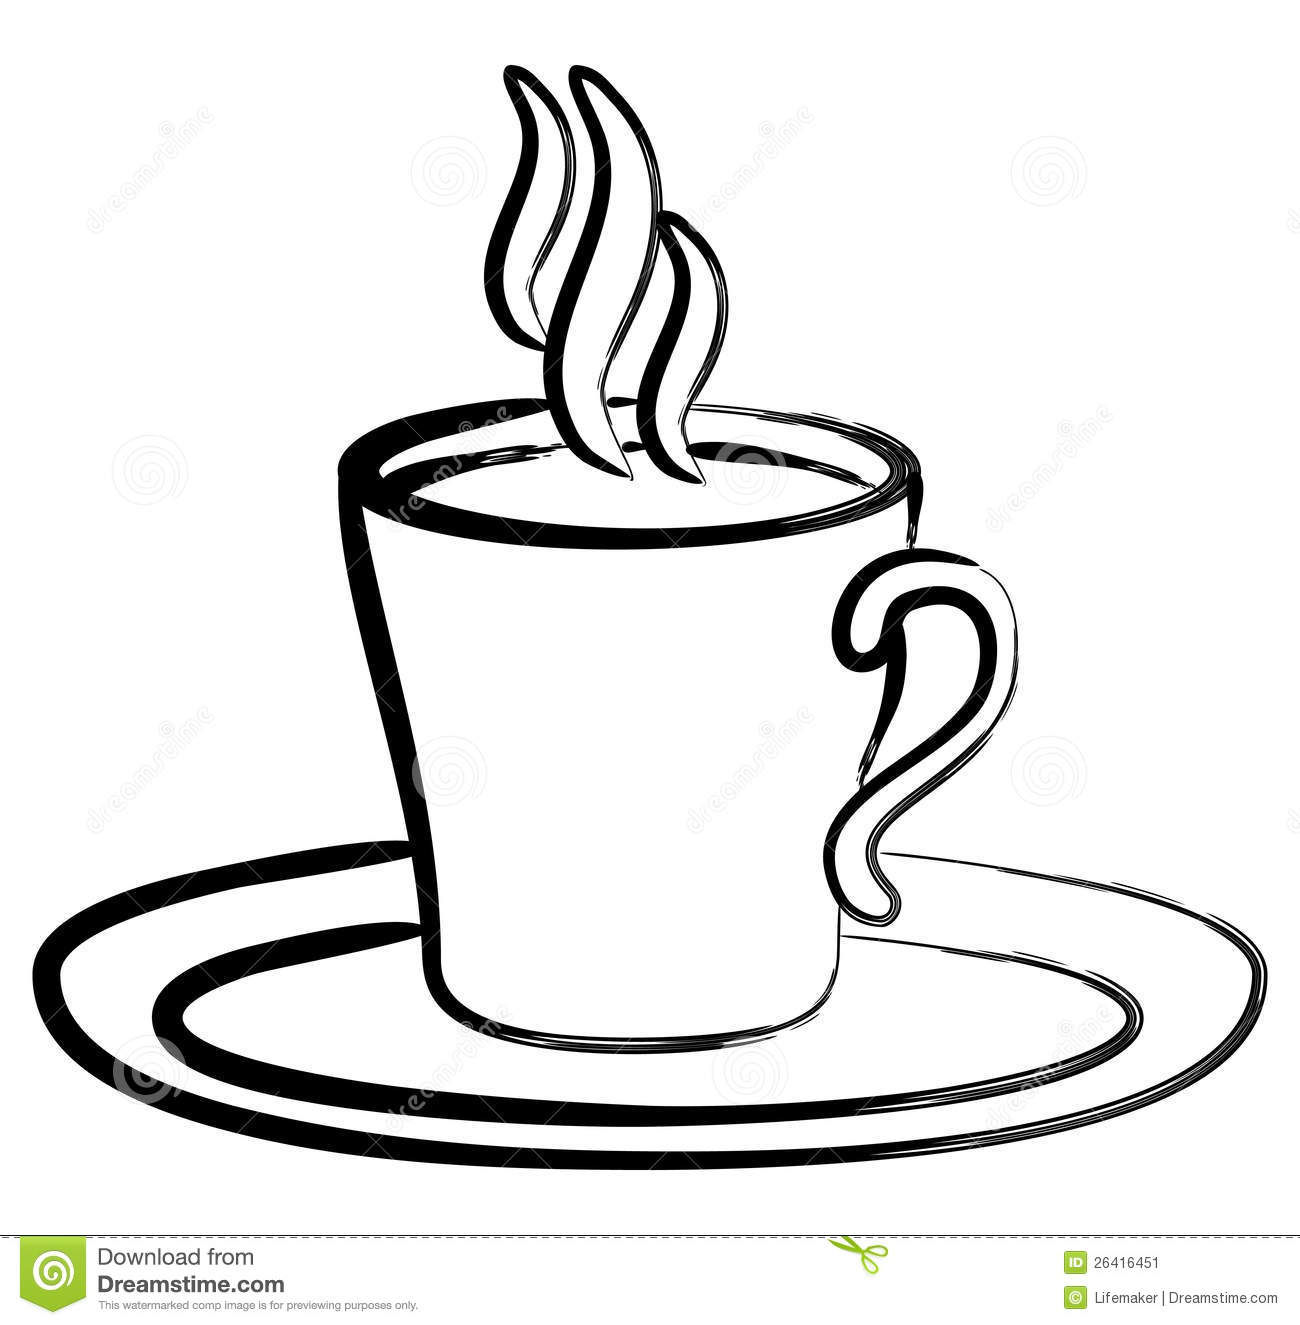 Coffee clipart black and white image library download Coffee clipart black and white 3 » Clipart Station image library download